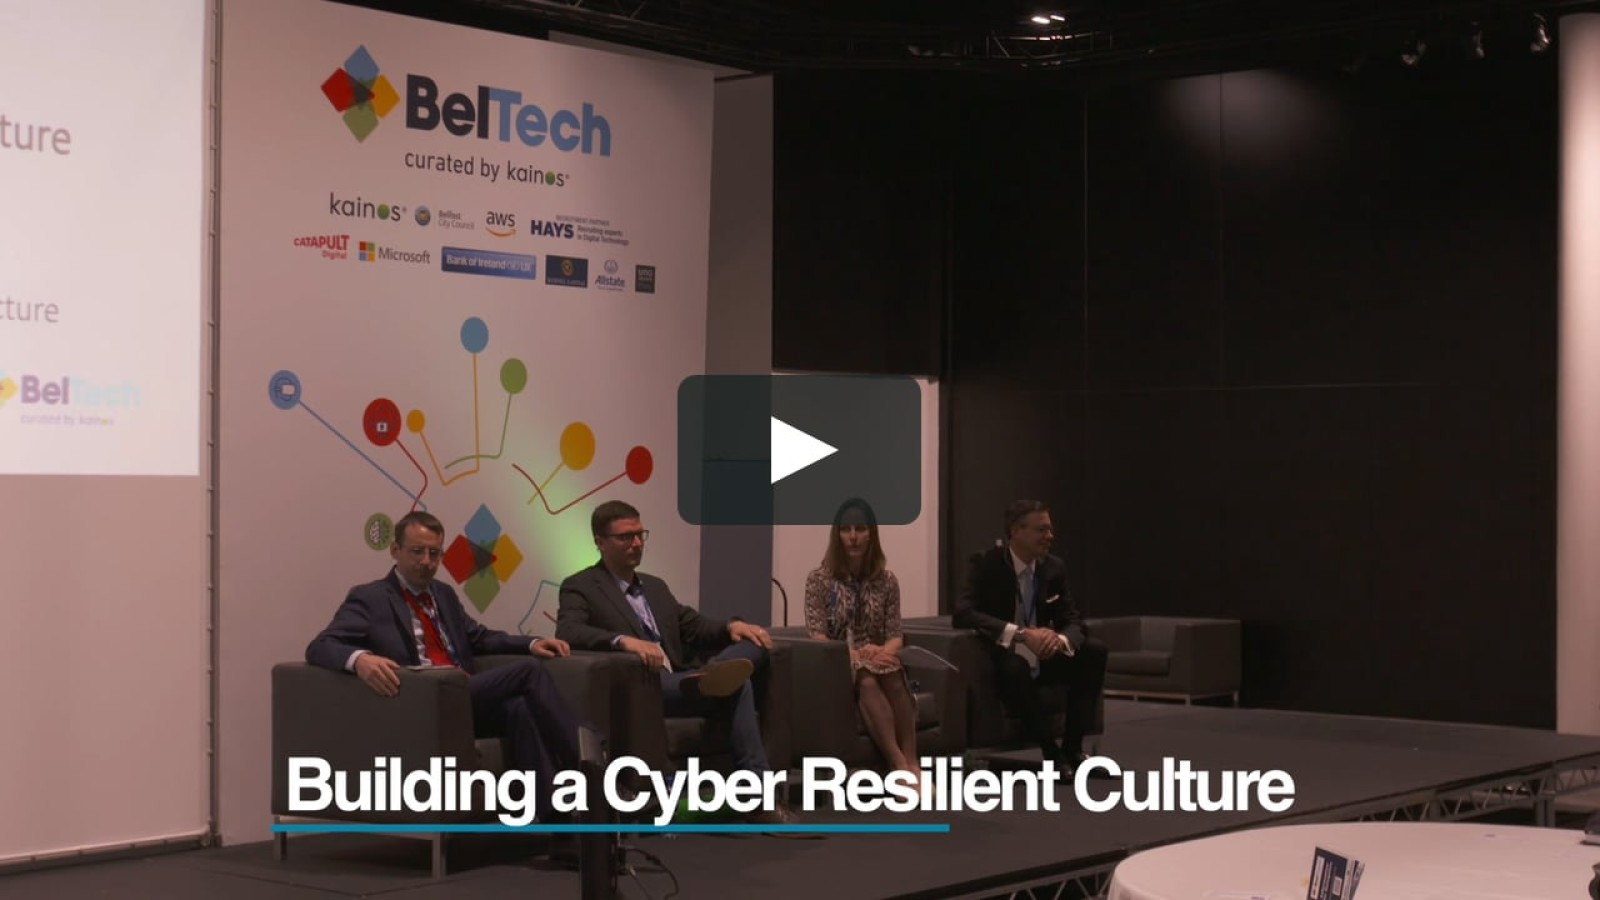 Panel session - Building a Cyber Resilient Culture